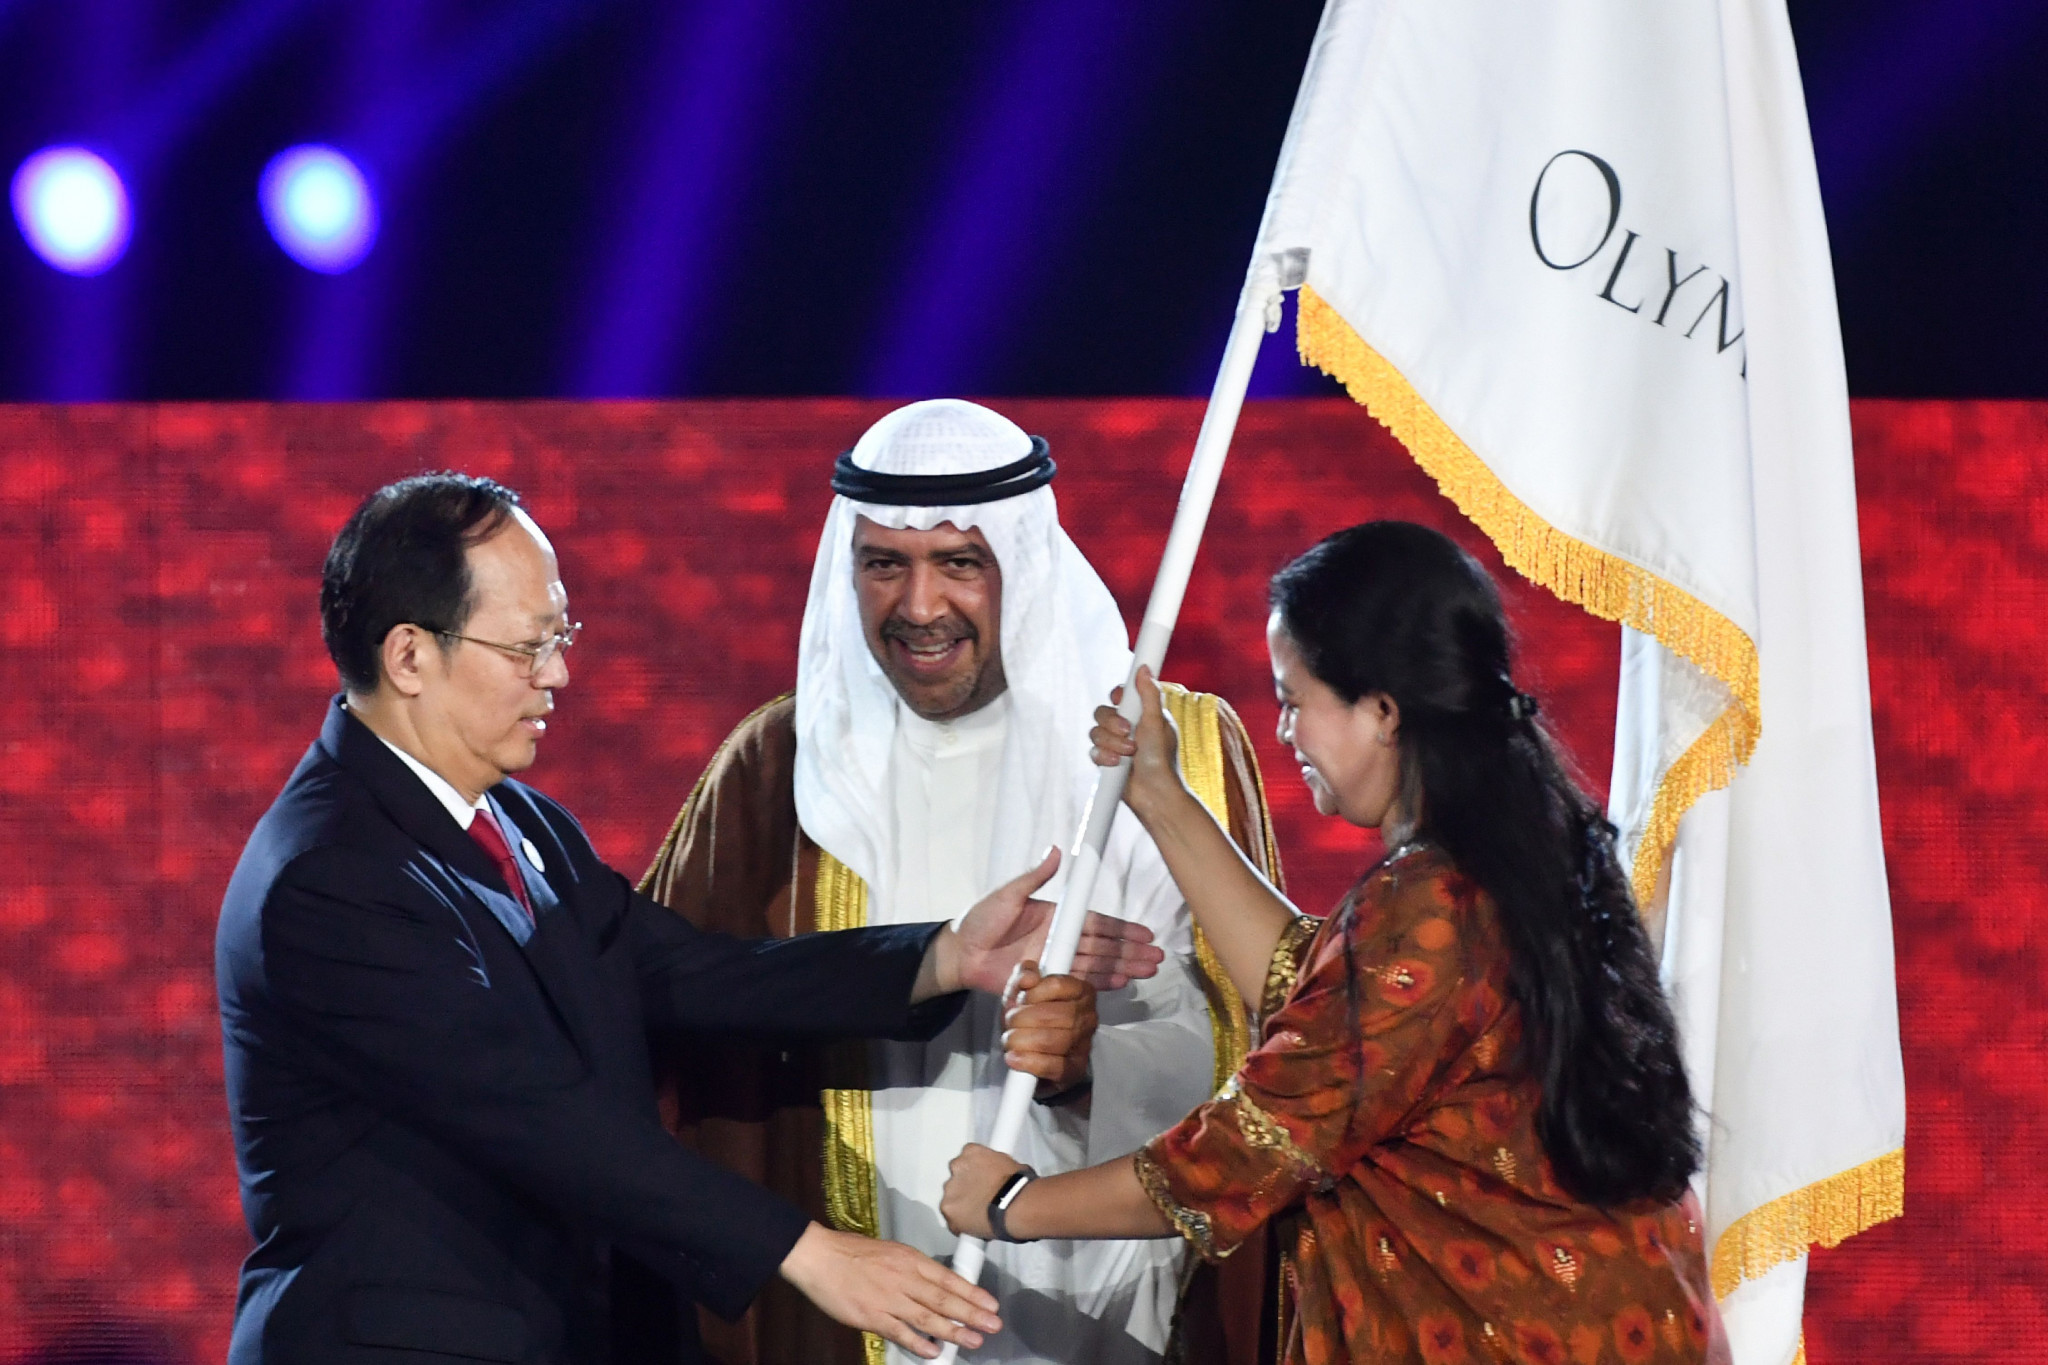 He was also on hand to participate in the OCA flag handover ceremony as attention turned to the 2022 Asian Games in Hangzhou in China ©Getty Images